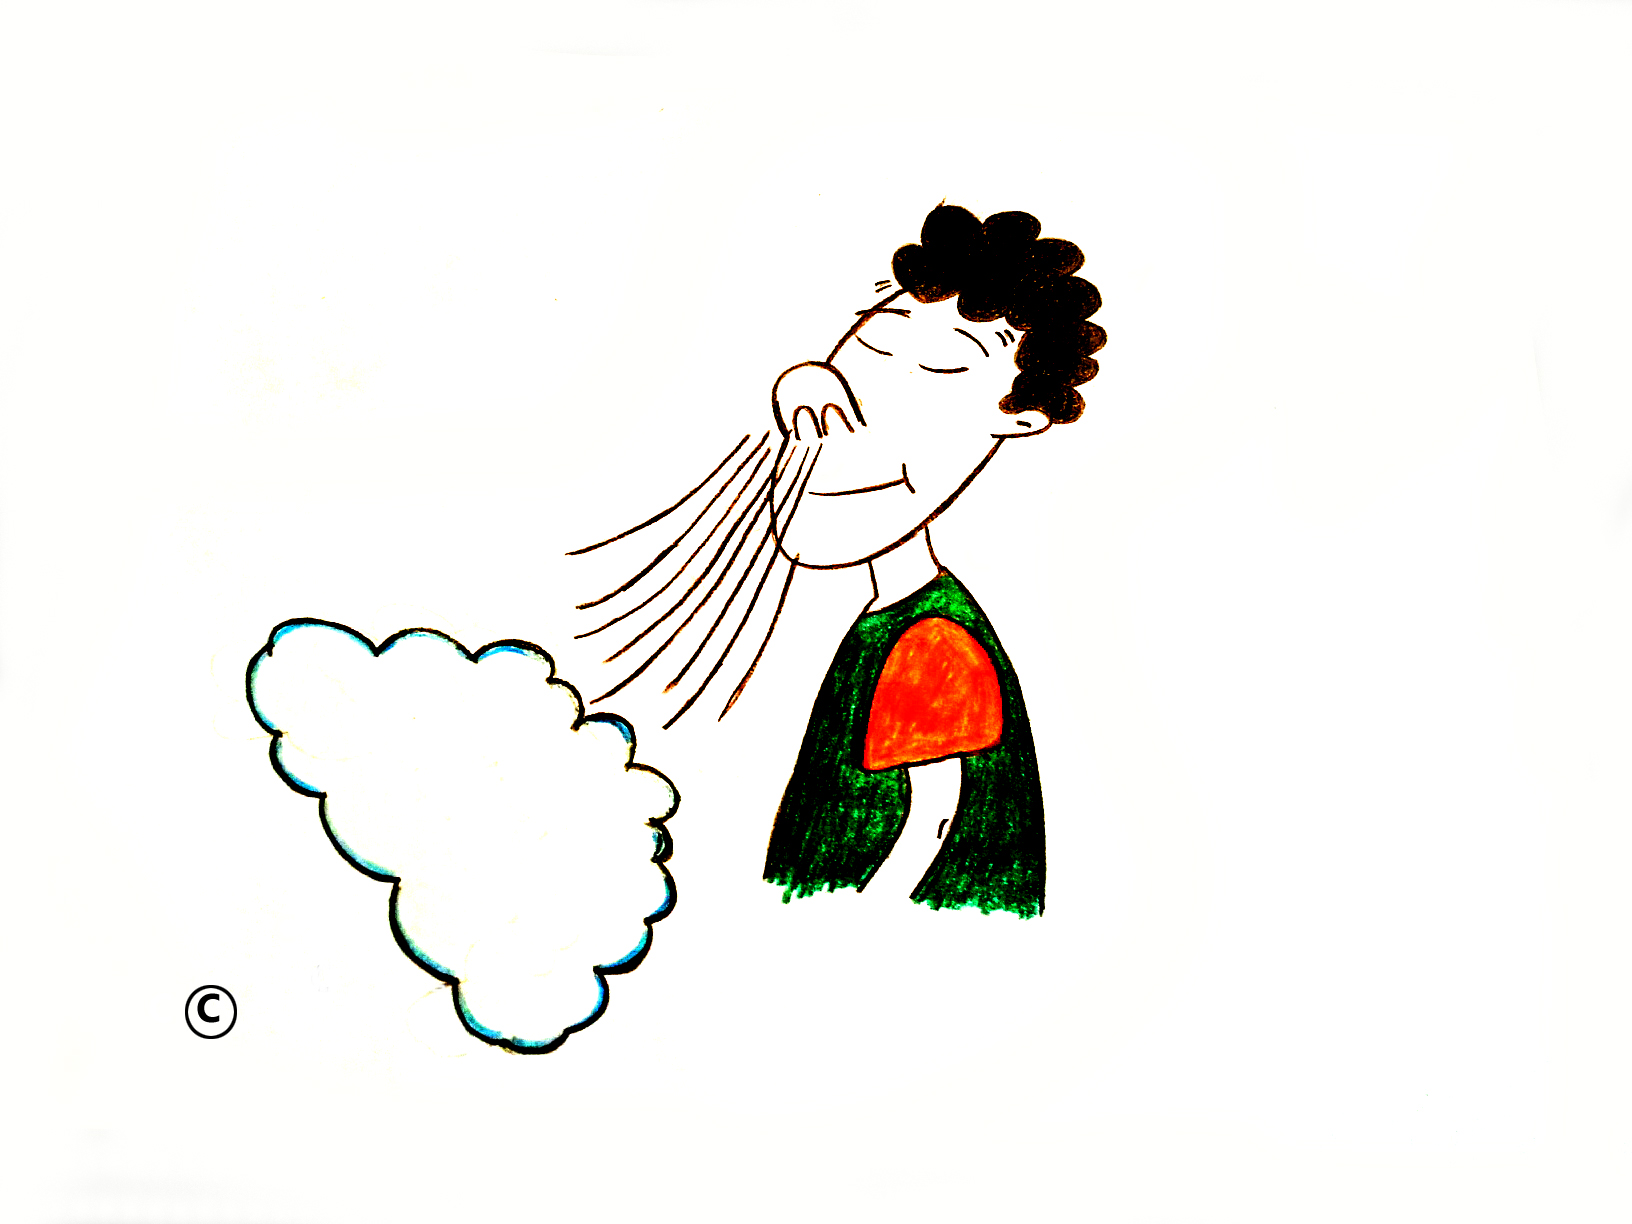 image freeuse stock Breathe clipart. Free cliparts download clip.